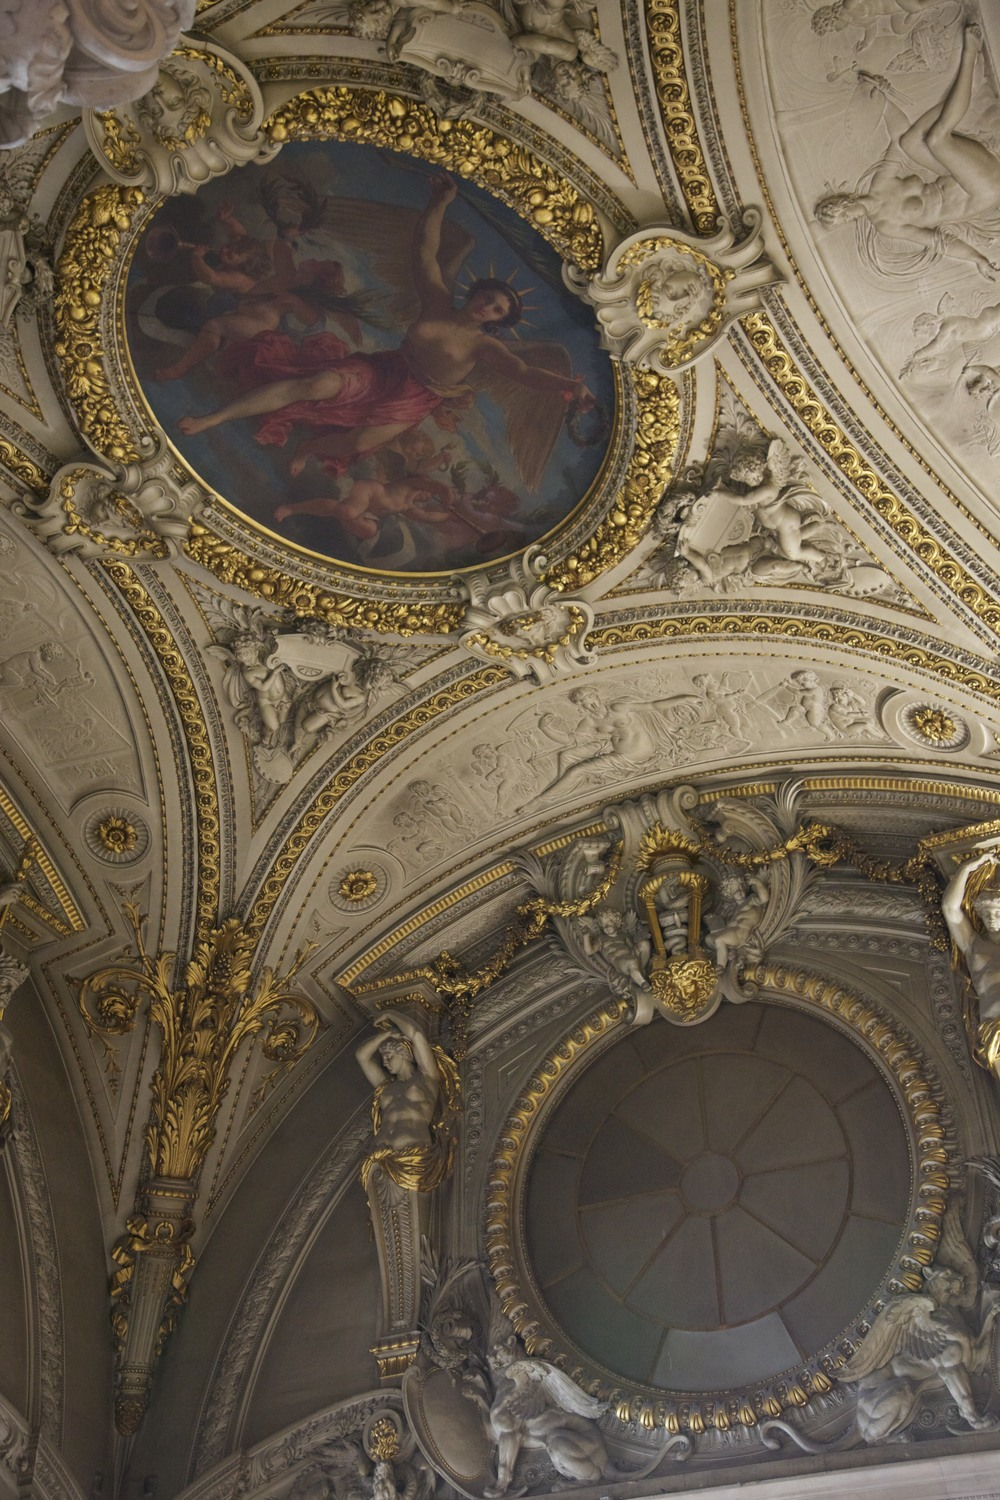 A ceiling at Le Louvre.